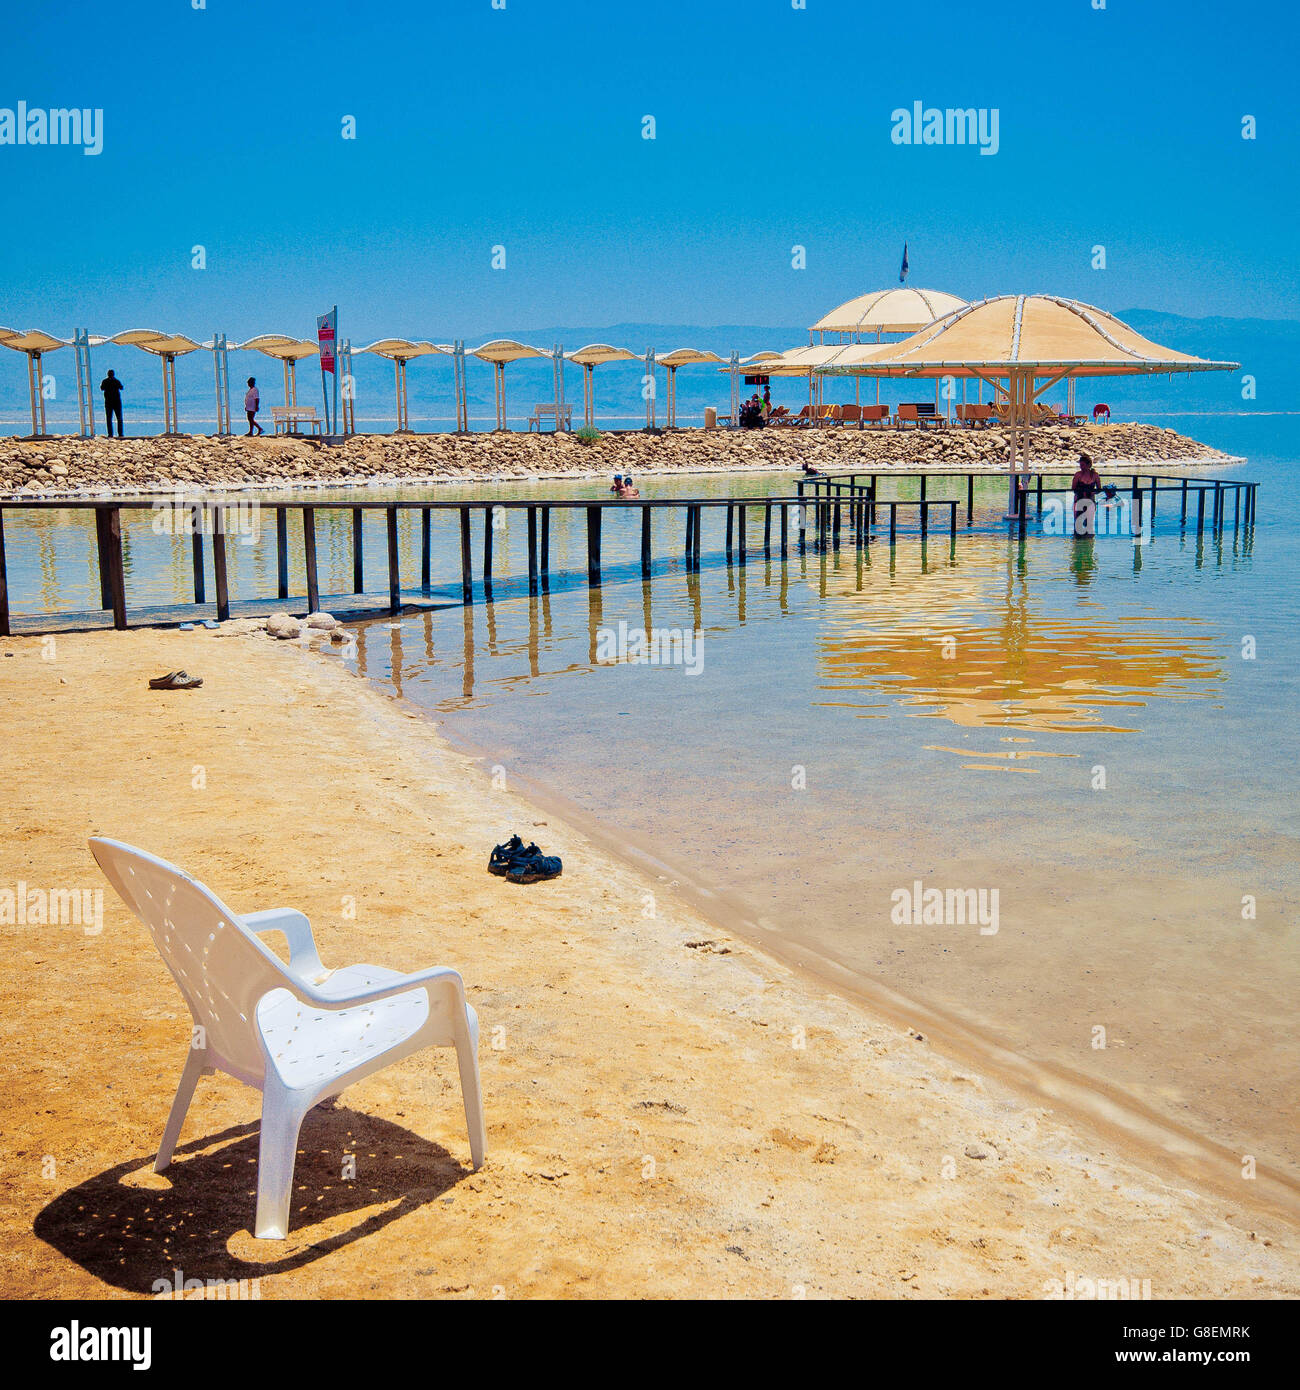 The chair on the shore of Dead Sea in Israel. - Stock Image